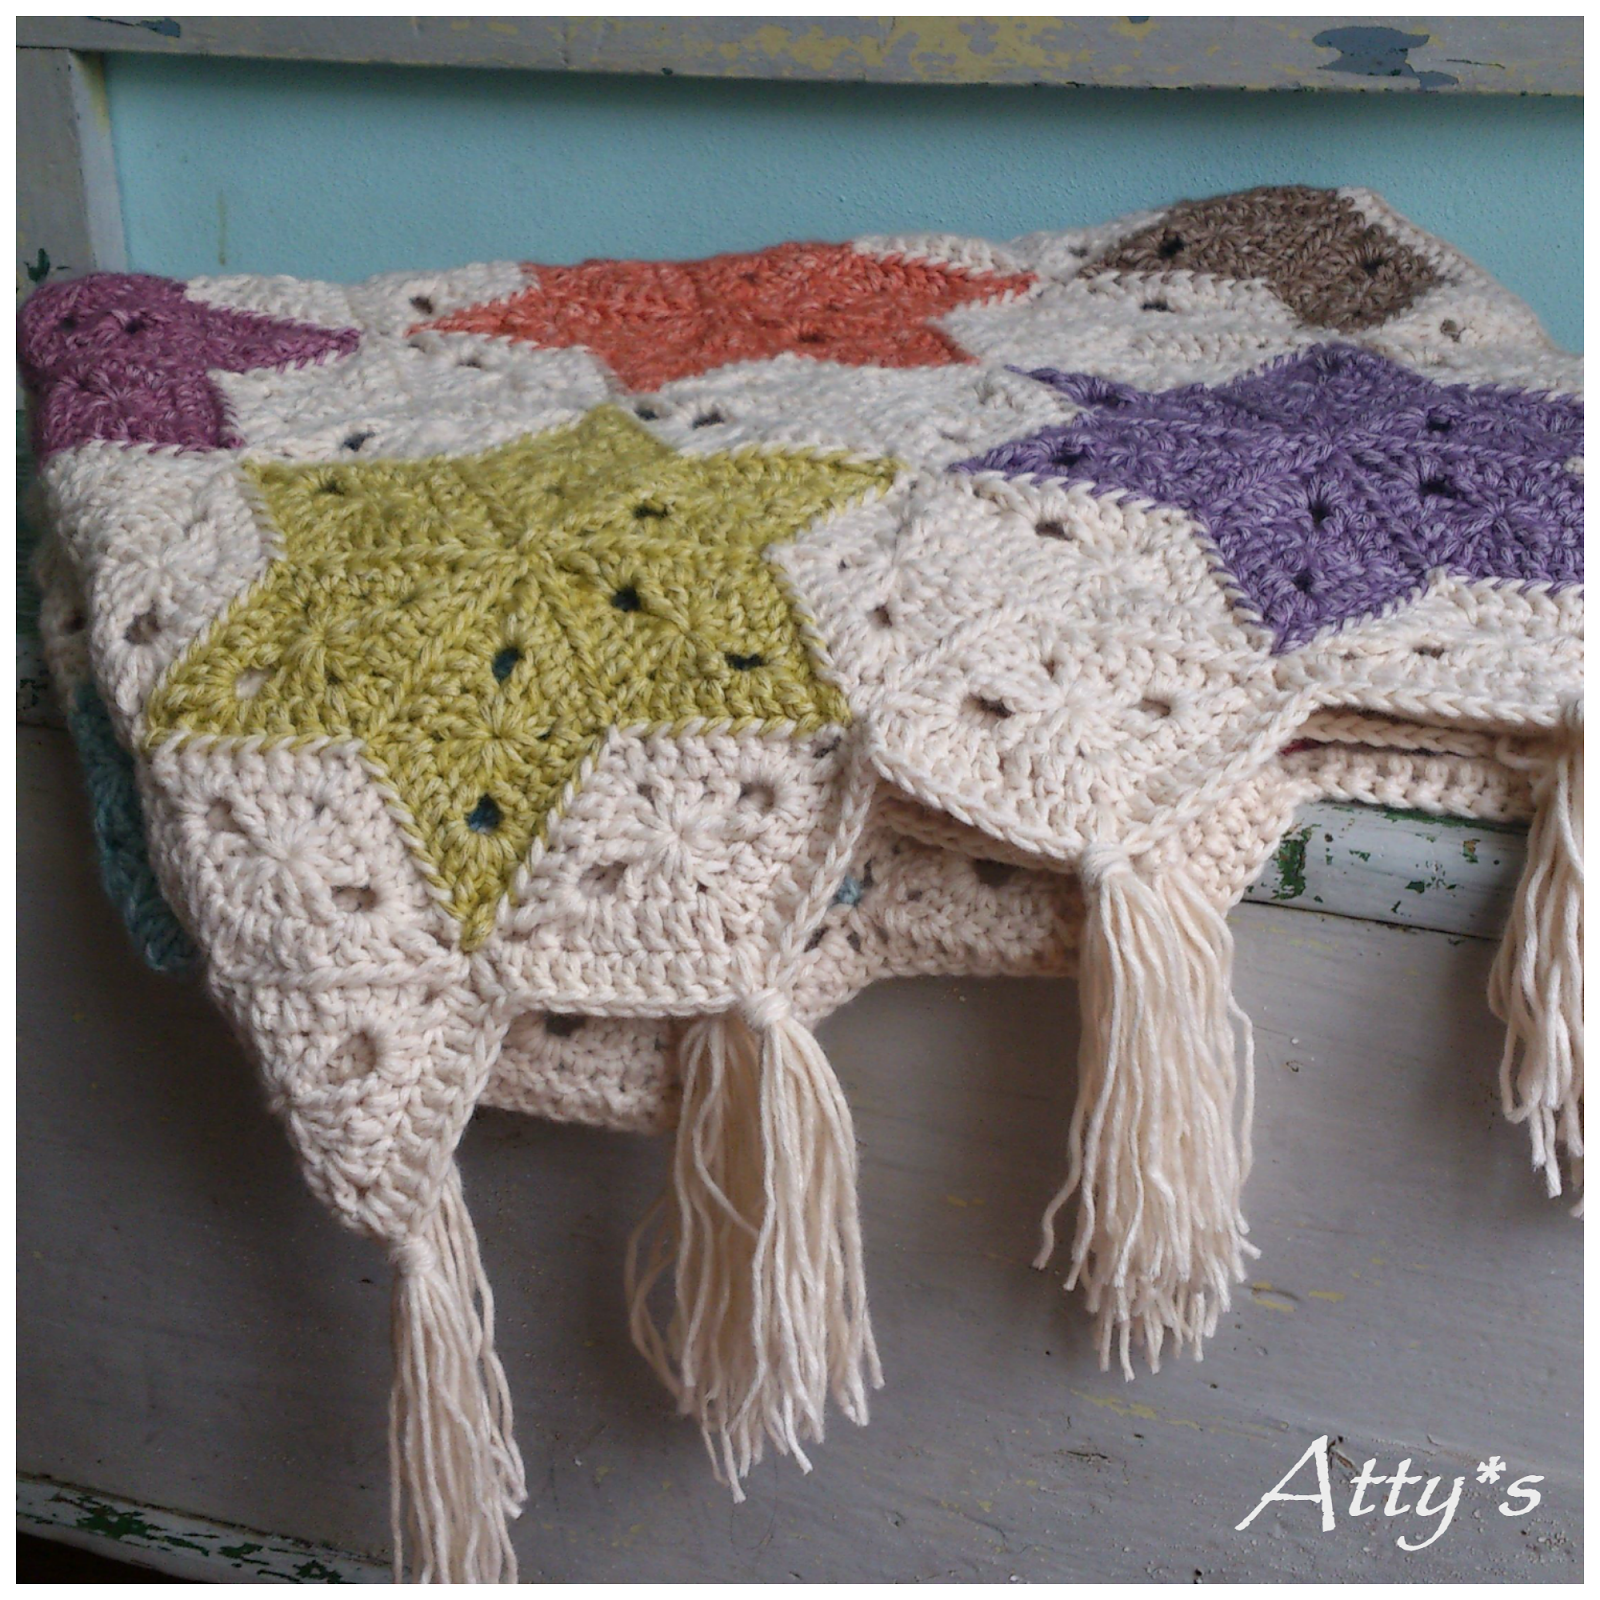 Attys star blanket using wool by stone washed xl crochet crochet bankloansurffo Images